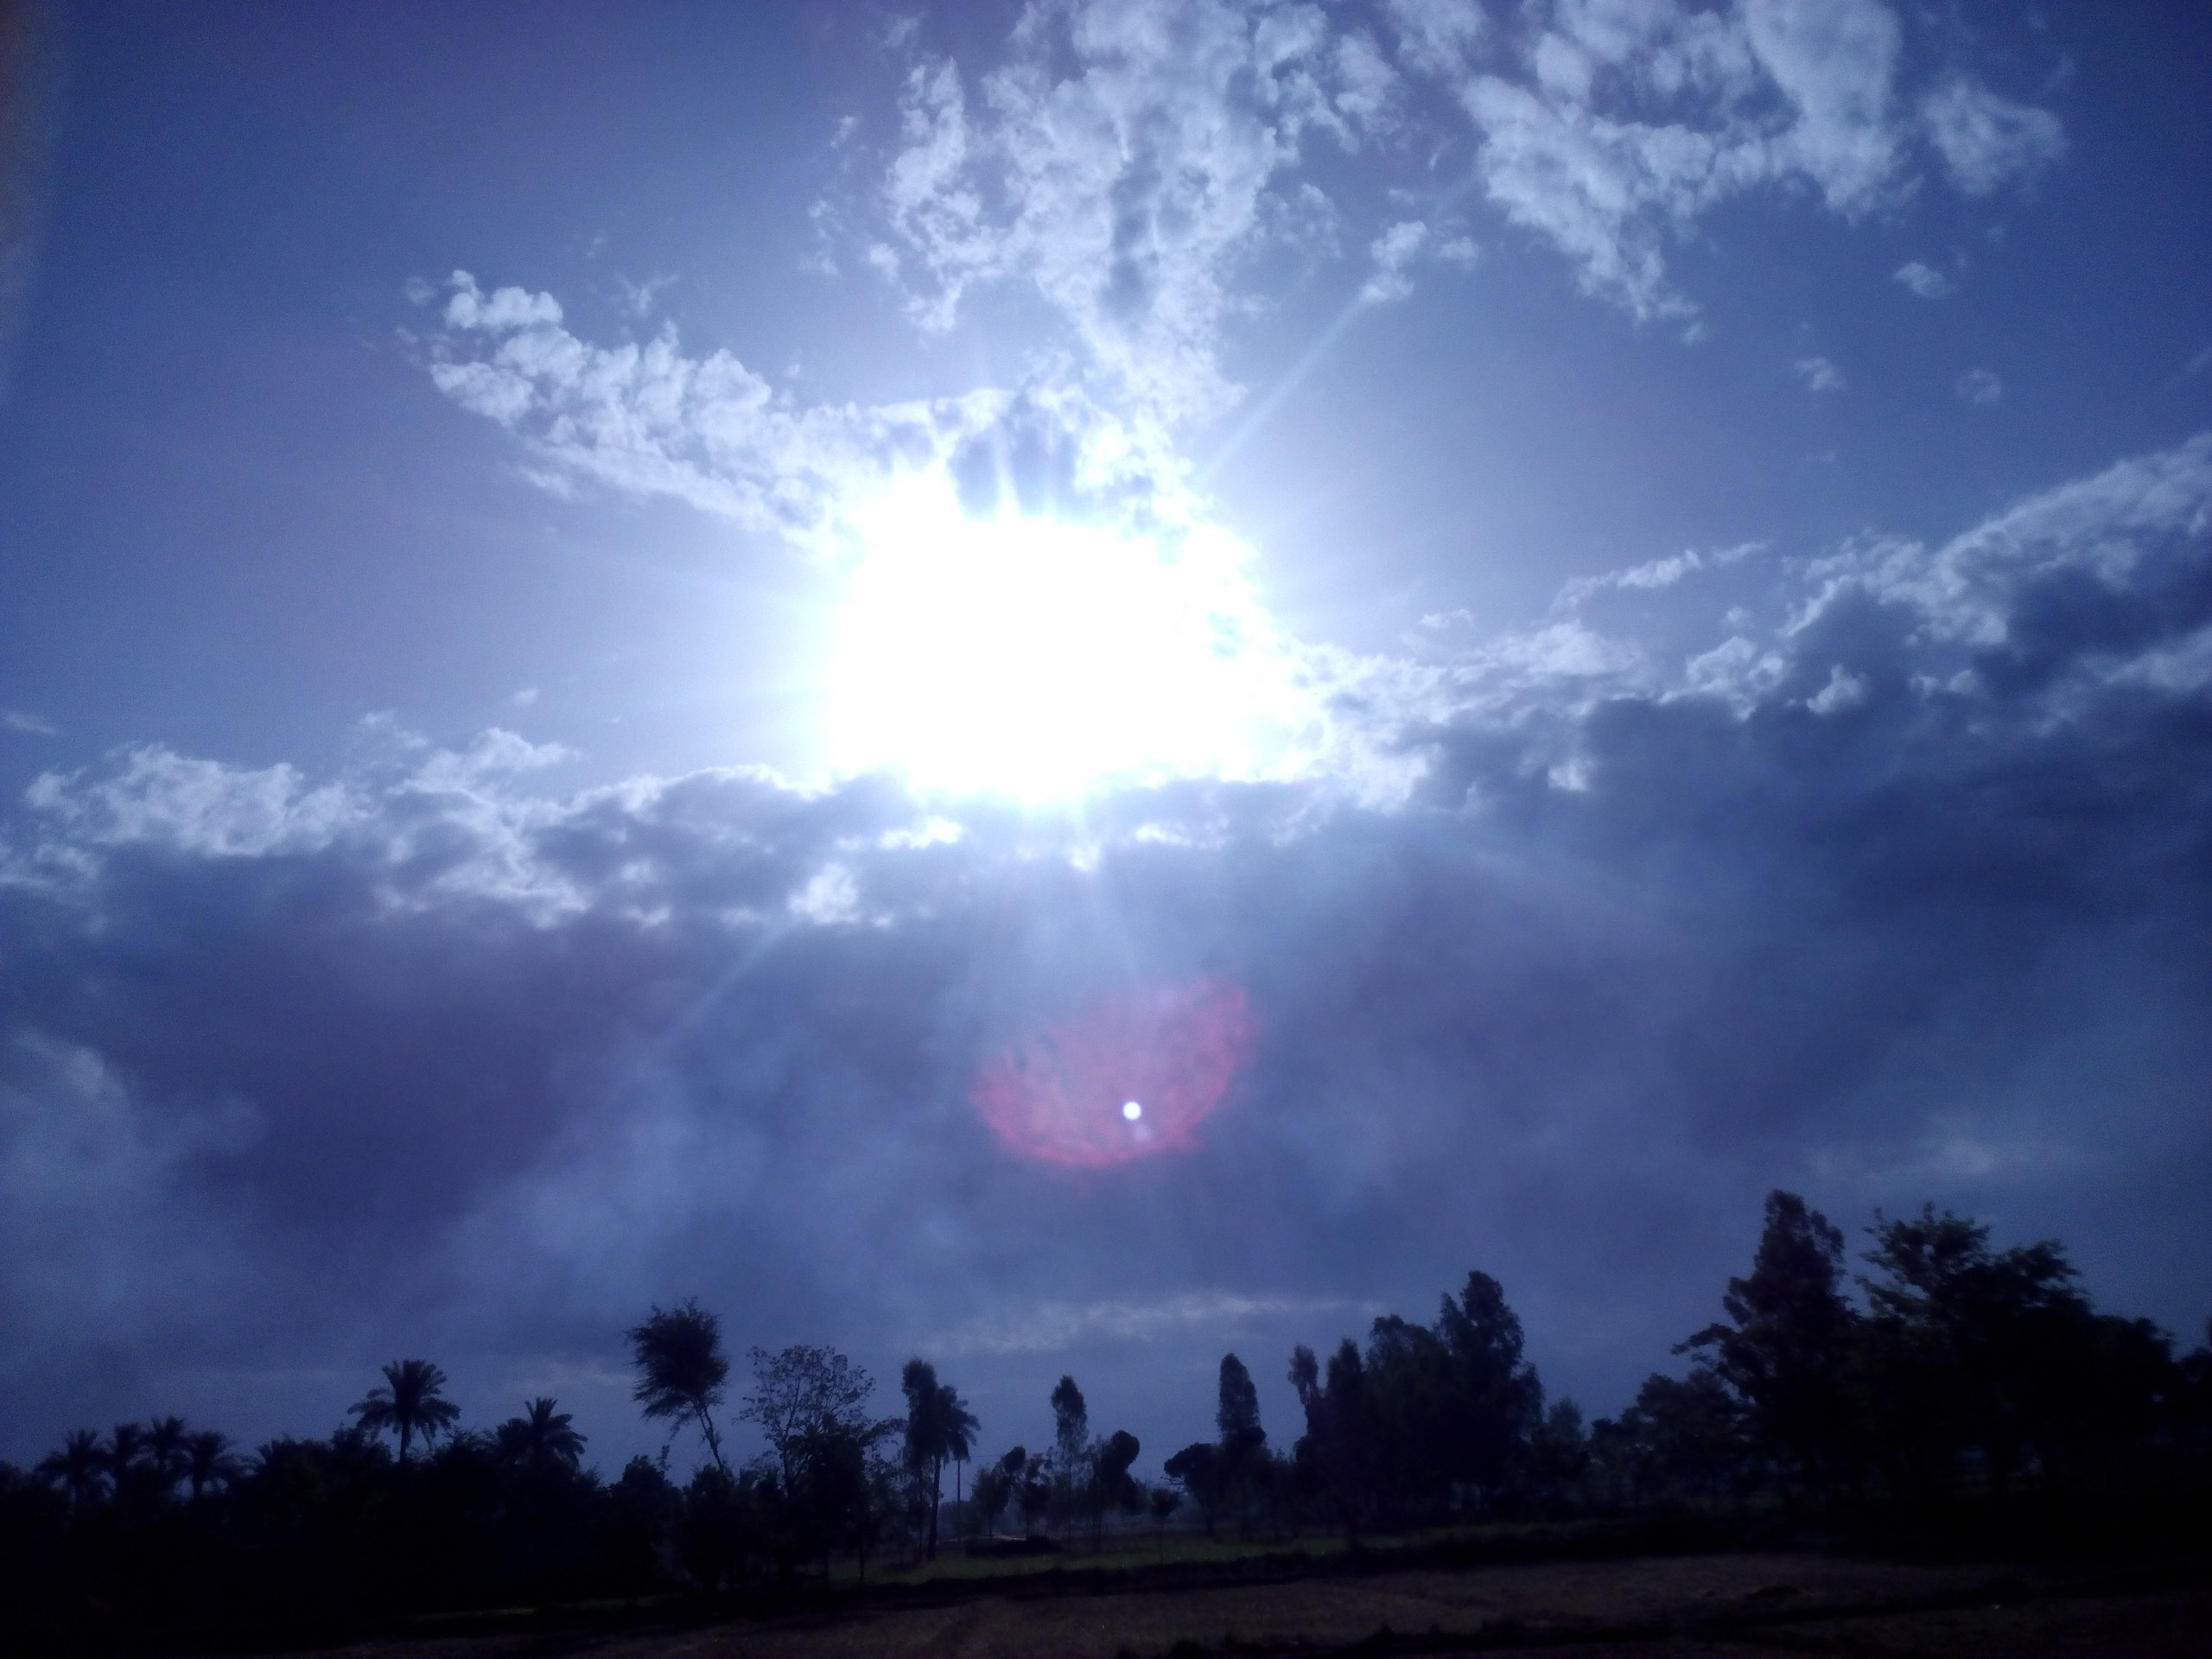 File:Fight Between Clouds & Sun.jpg - Wikimedia Commons